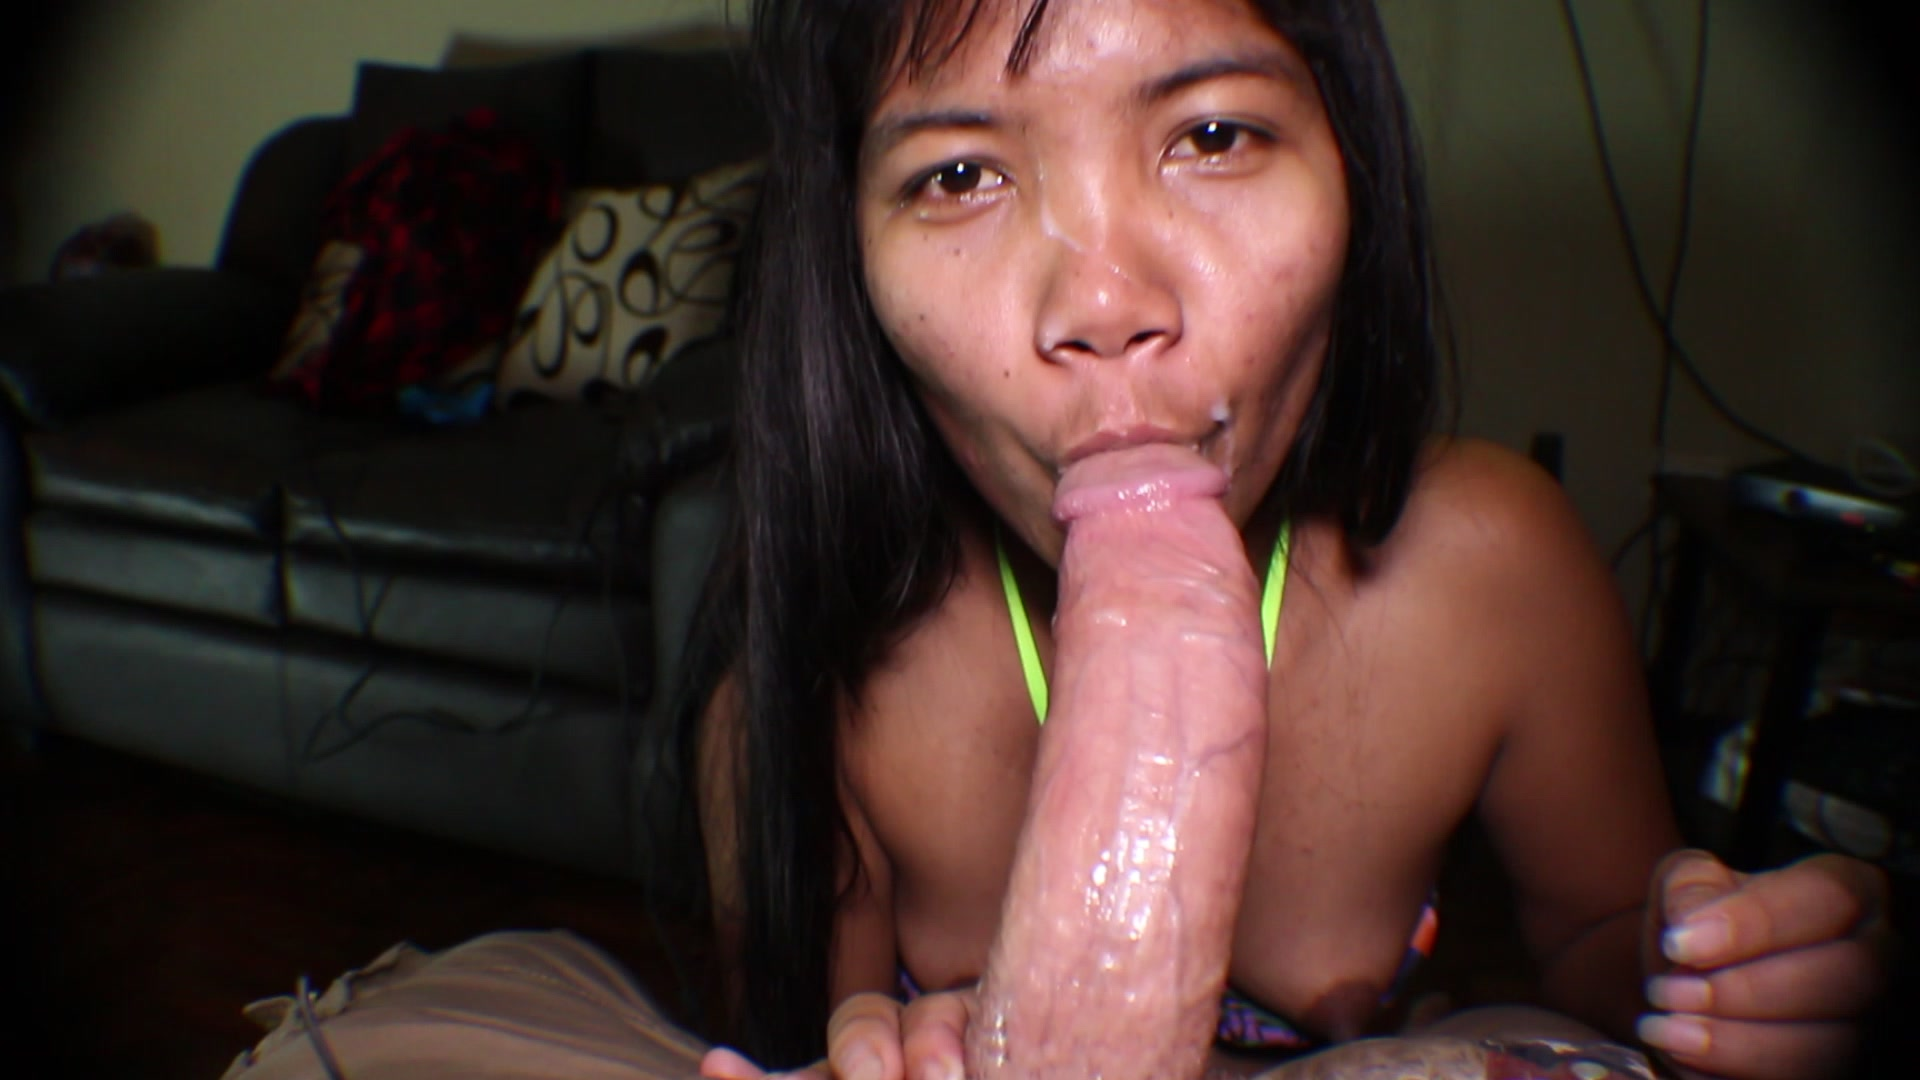 Lesbian interracial videos asian